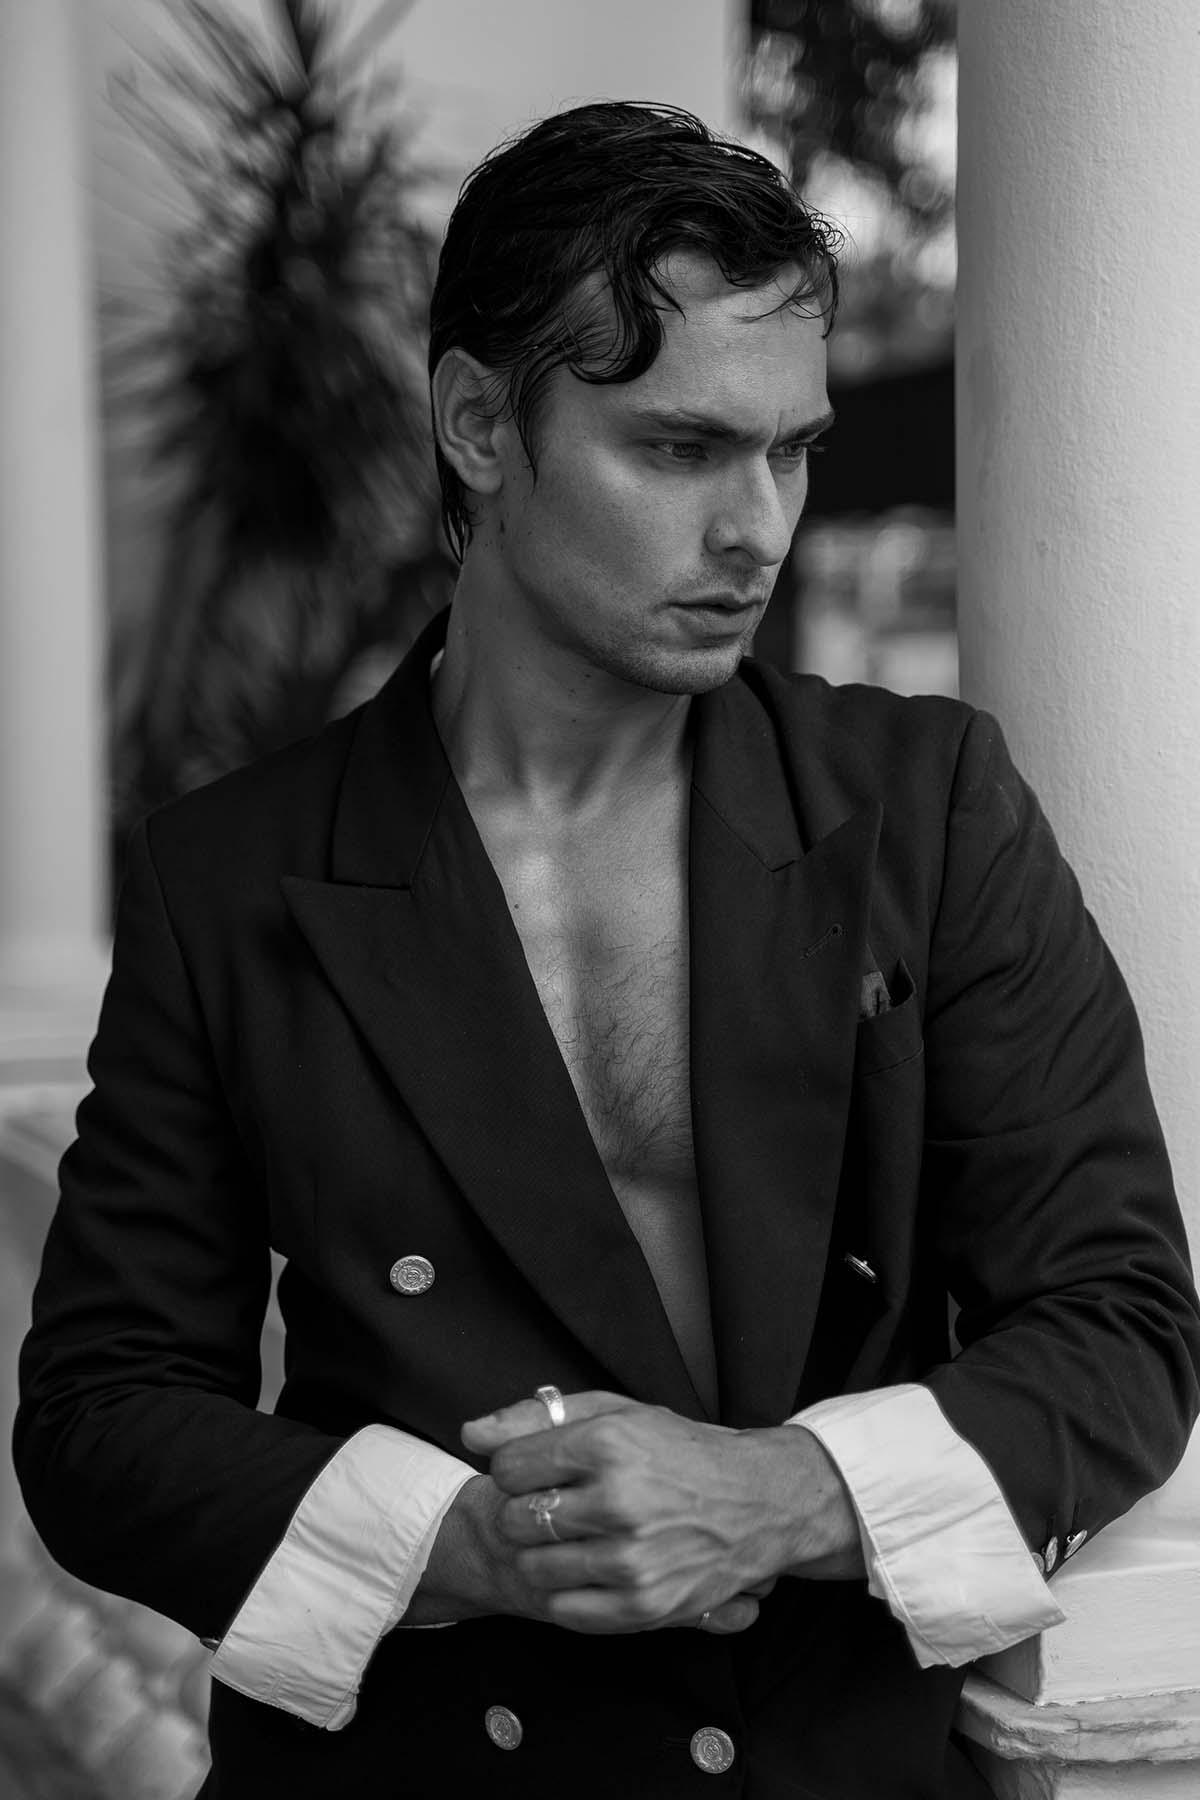 Leandro Juliani by Nelson Felix for Brazilian Male Model